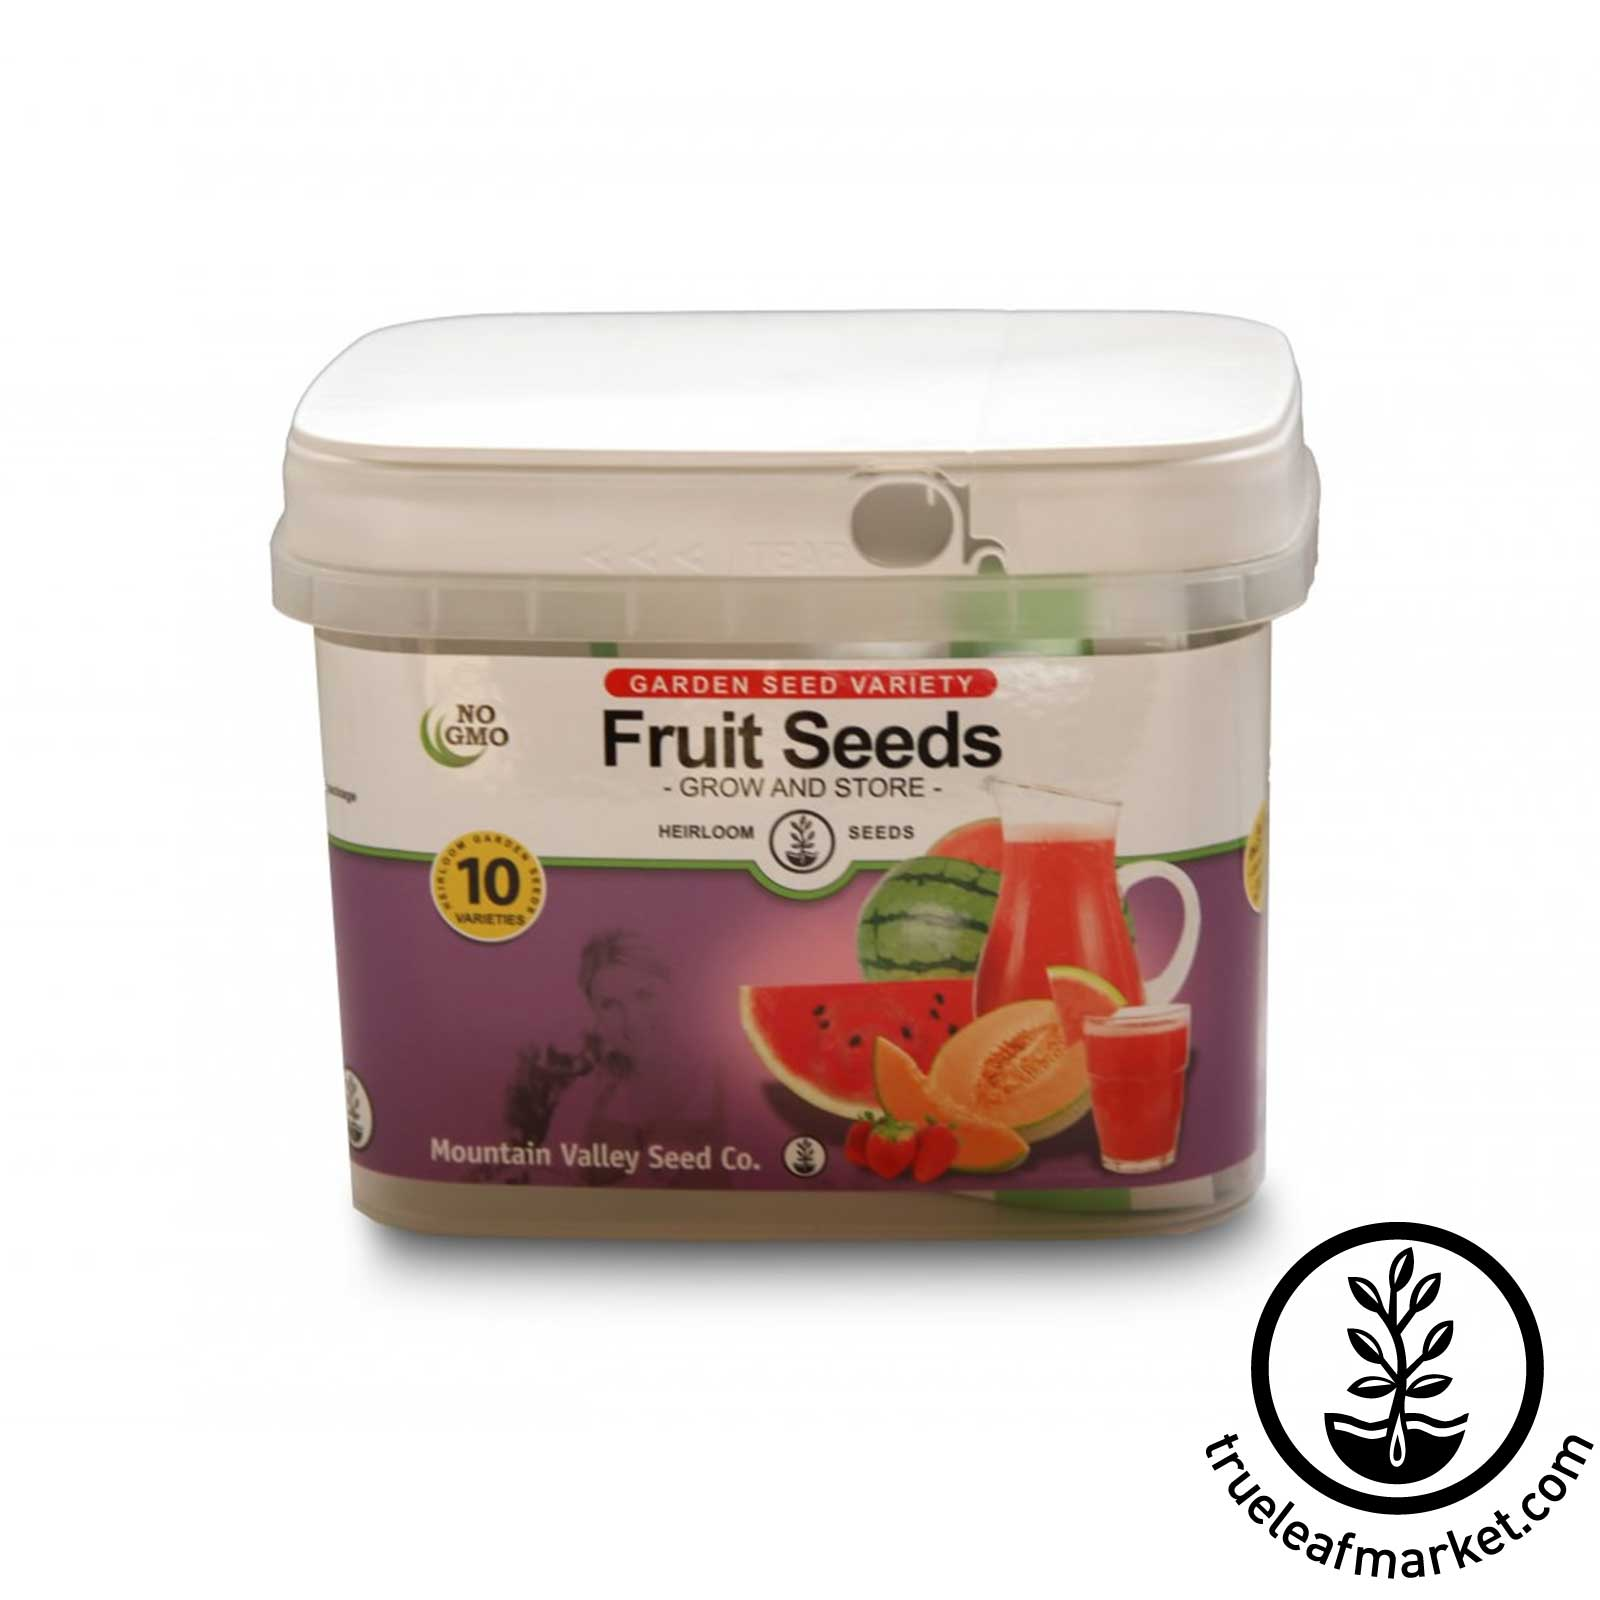 Fruit Seed Bucket From Mountain Valley